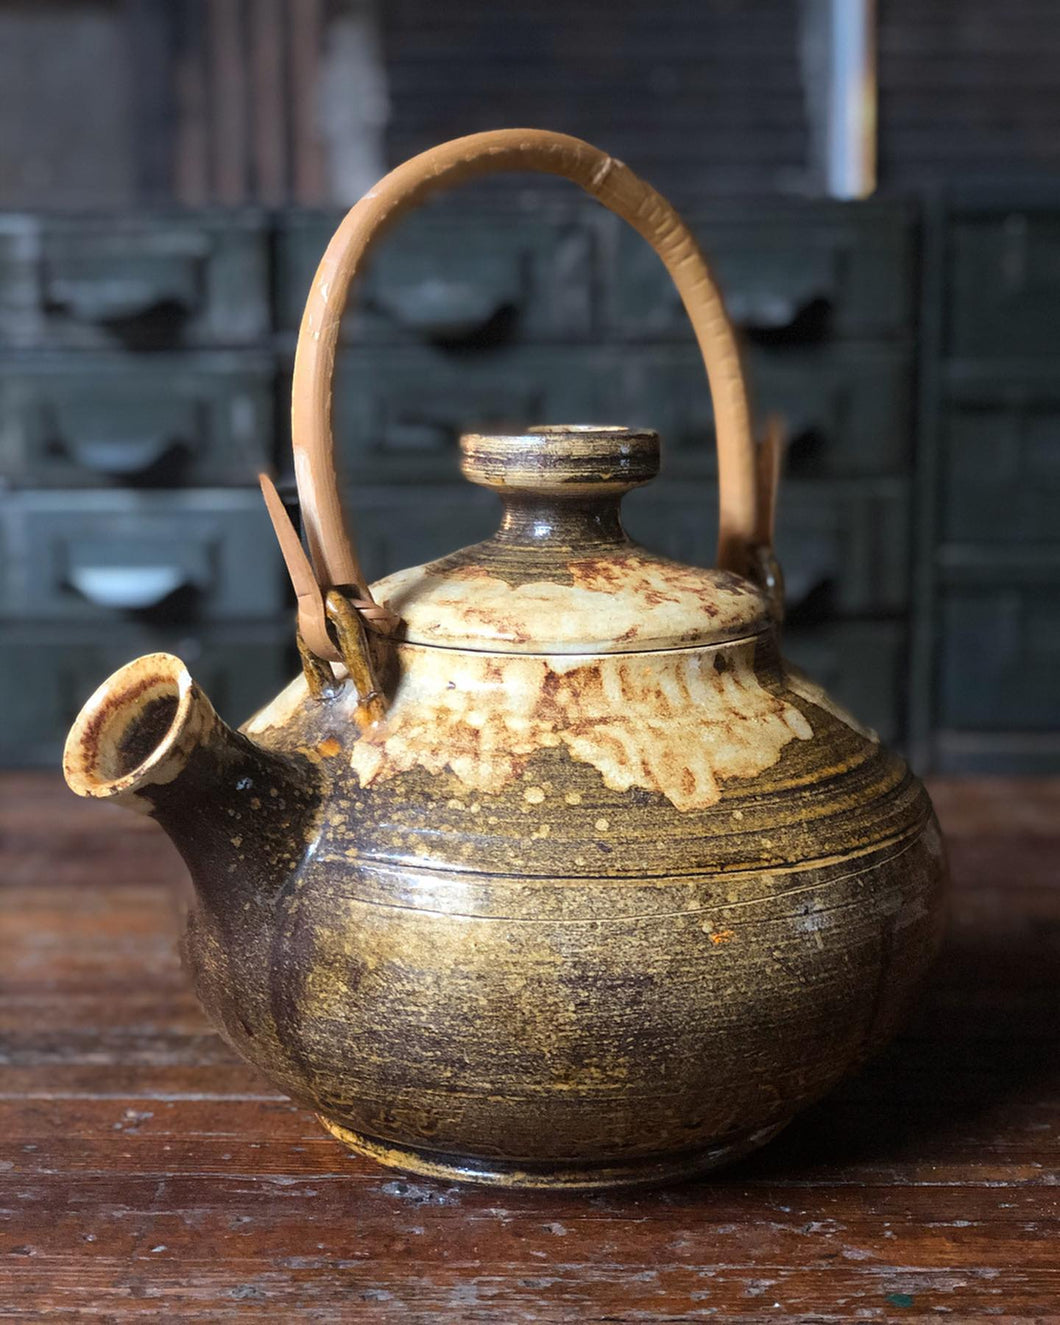 Homemade Ceramic Tea Kettle w/ Bamboo Handle